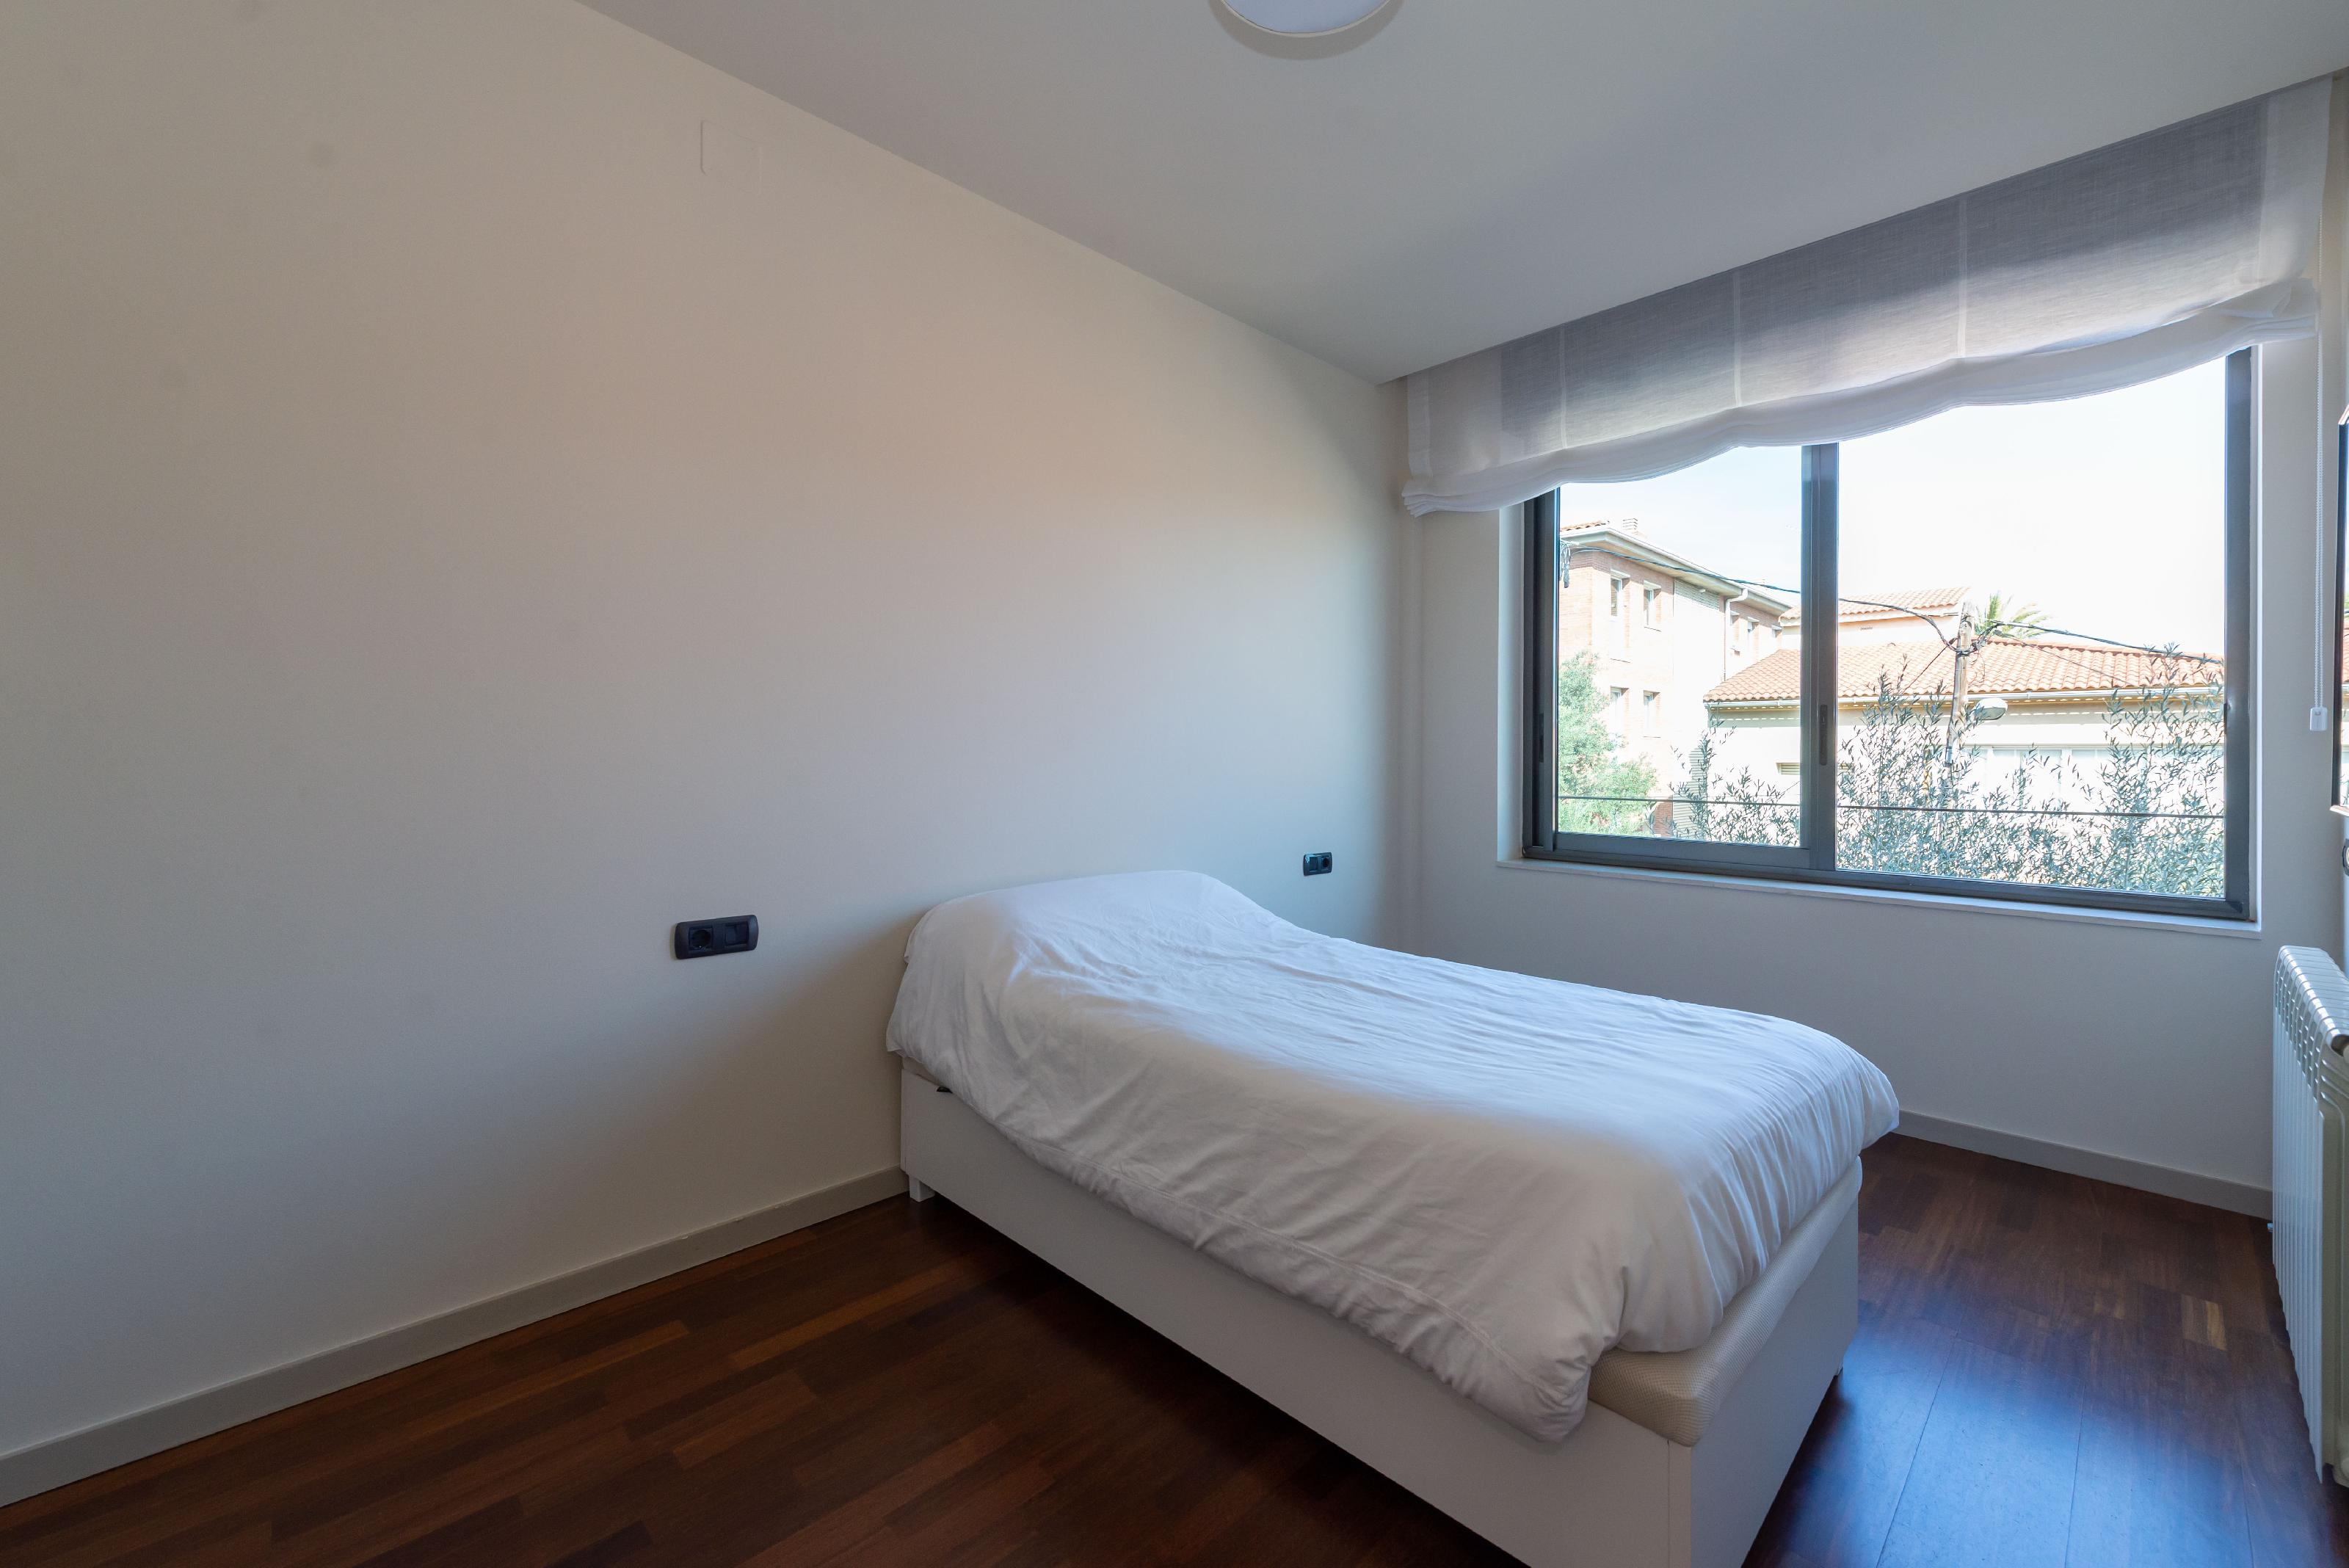 246682 Flat for sale in Gràcia, Vallcarca and Els Penitents 12